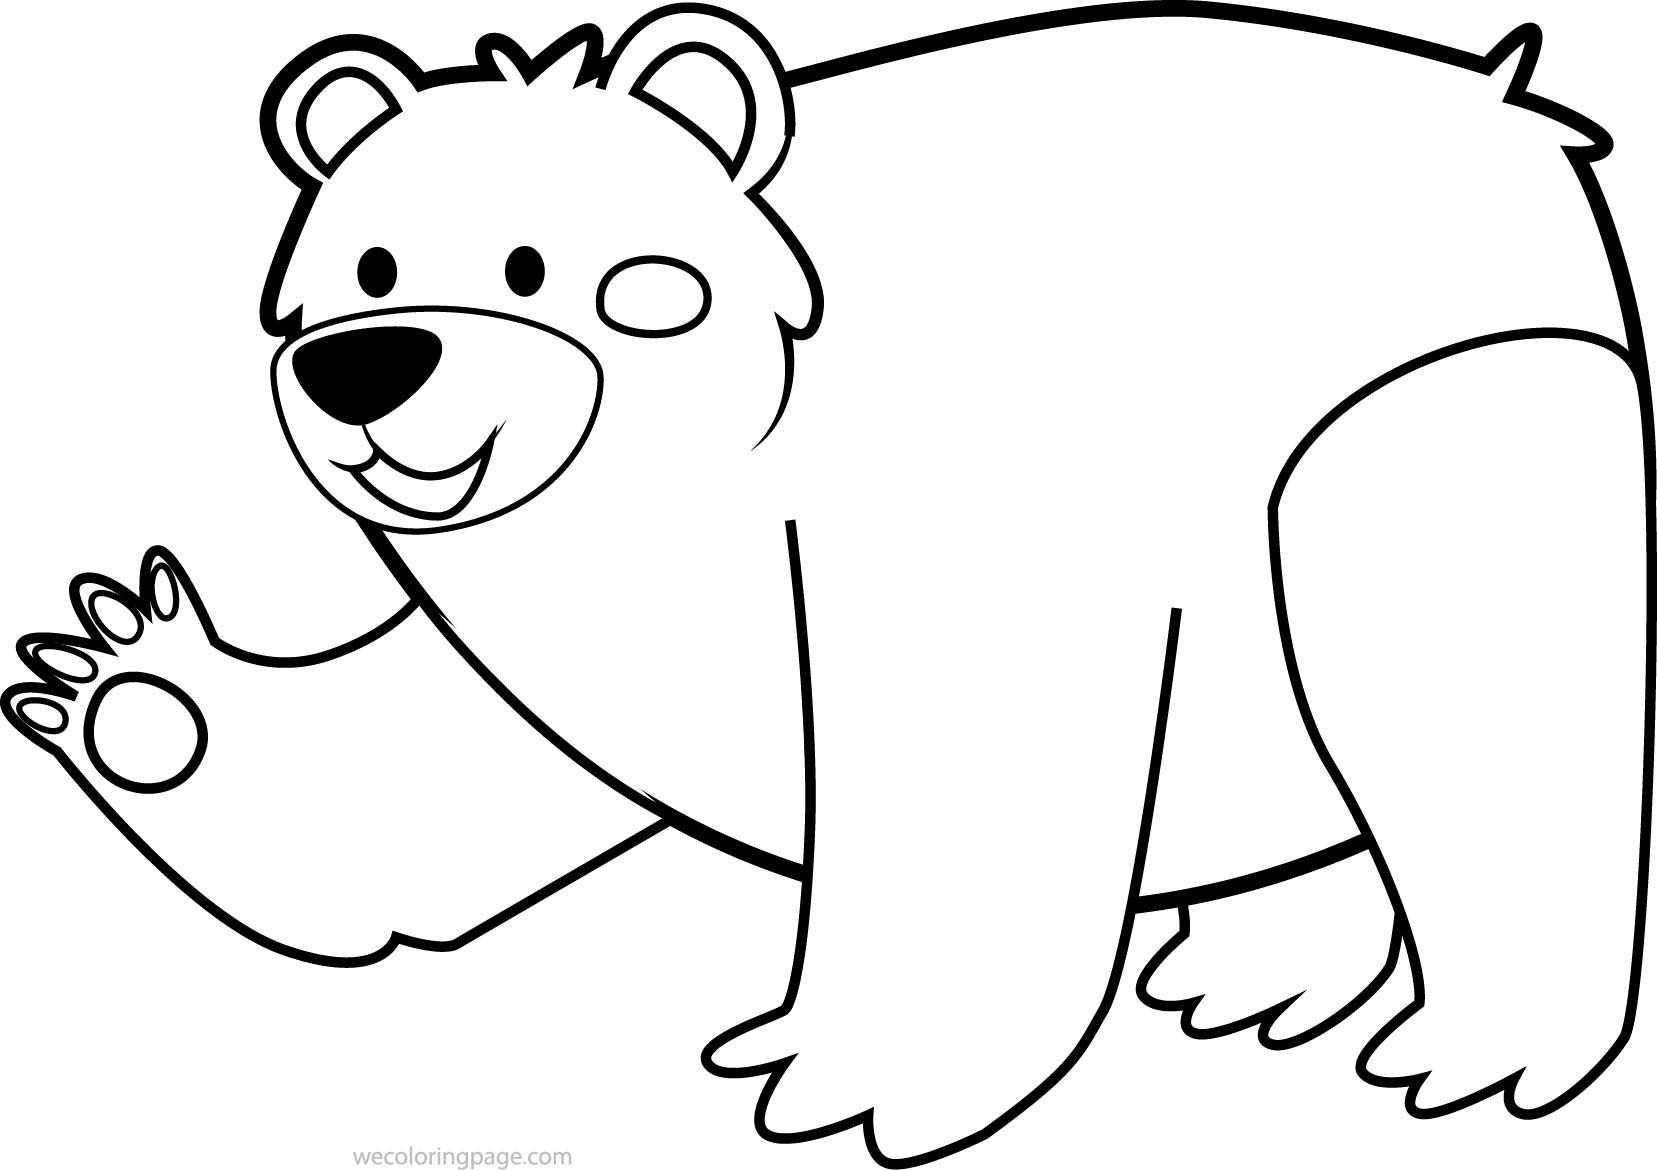 Cute Animal Bear Coloring Page | Wecoloringpage